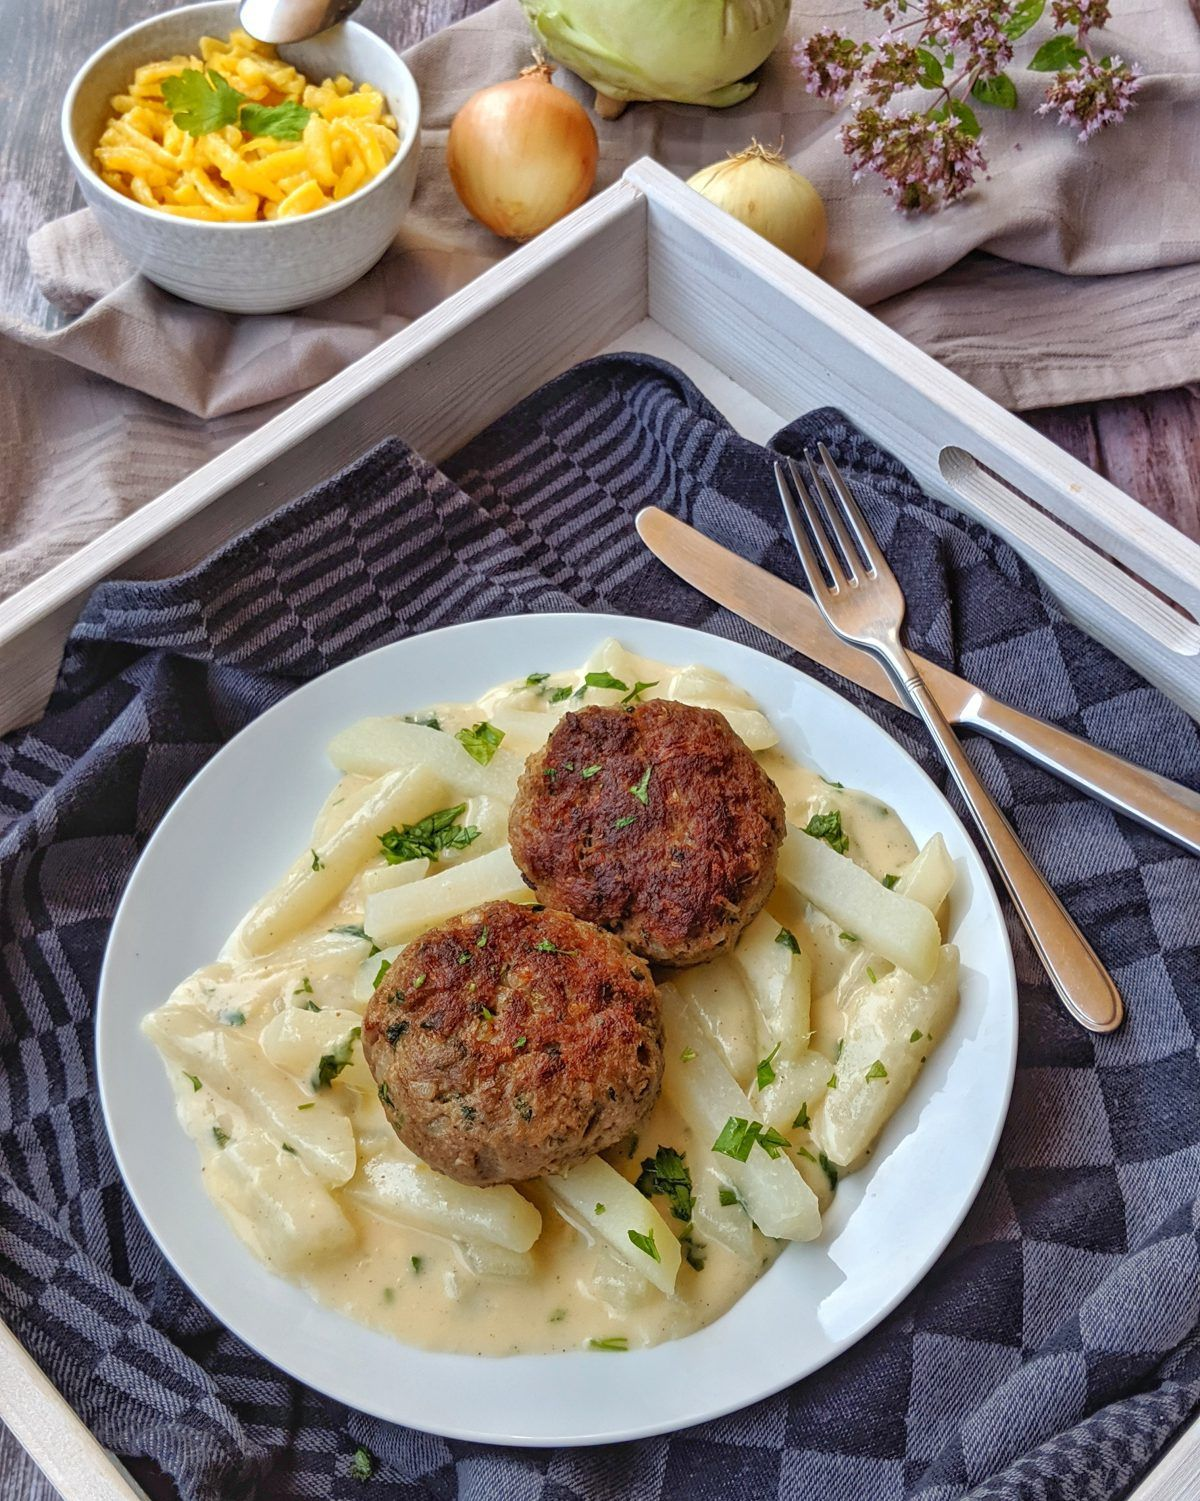 Photo of Cabbage greens in light sauce with meatballs and spaetzle